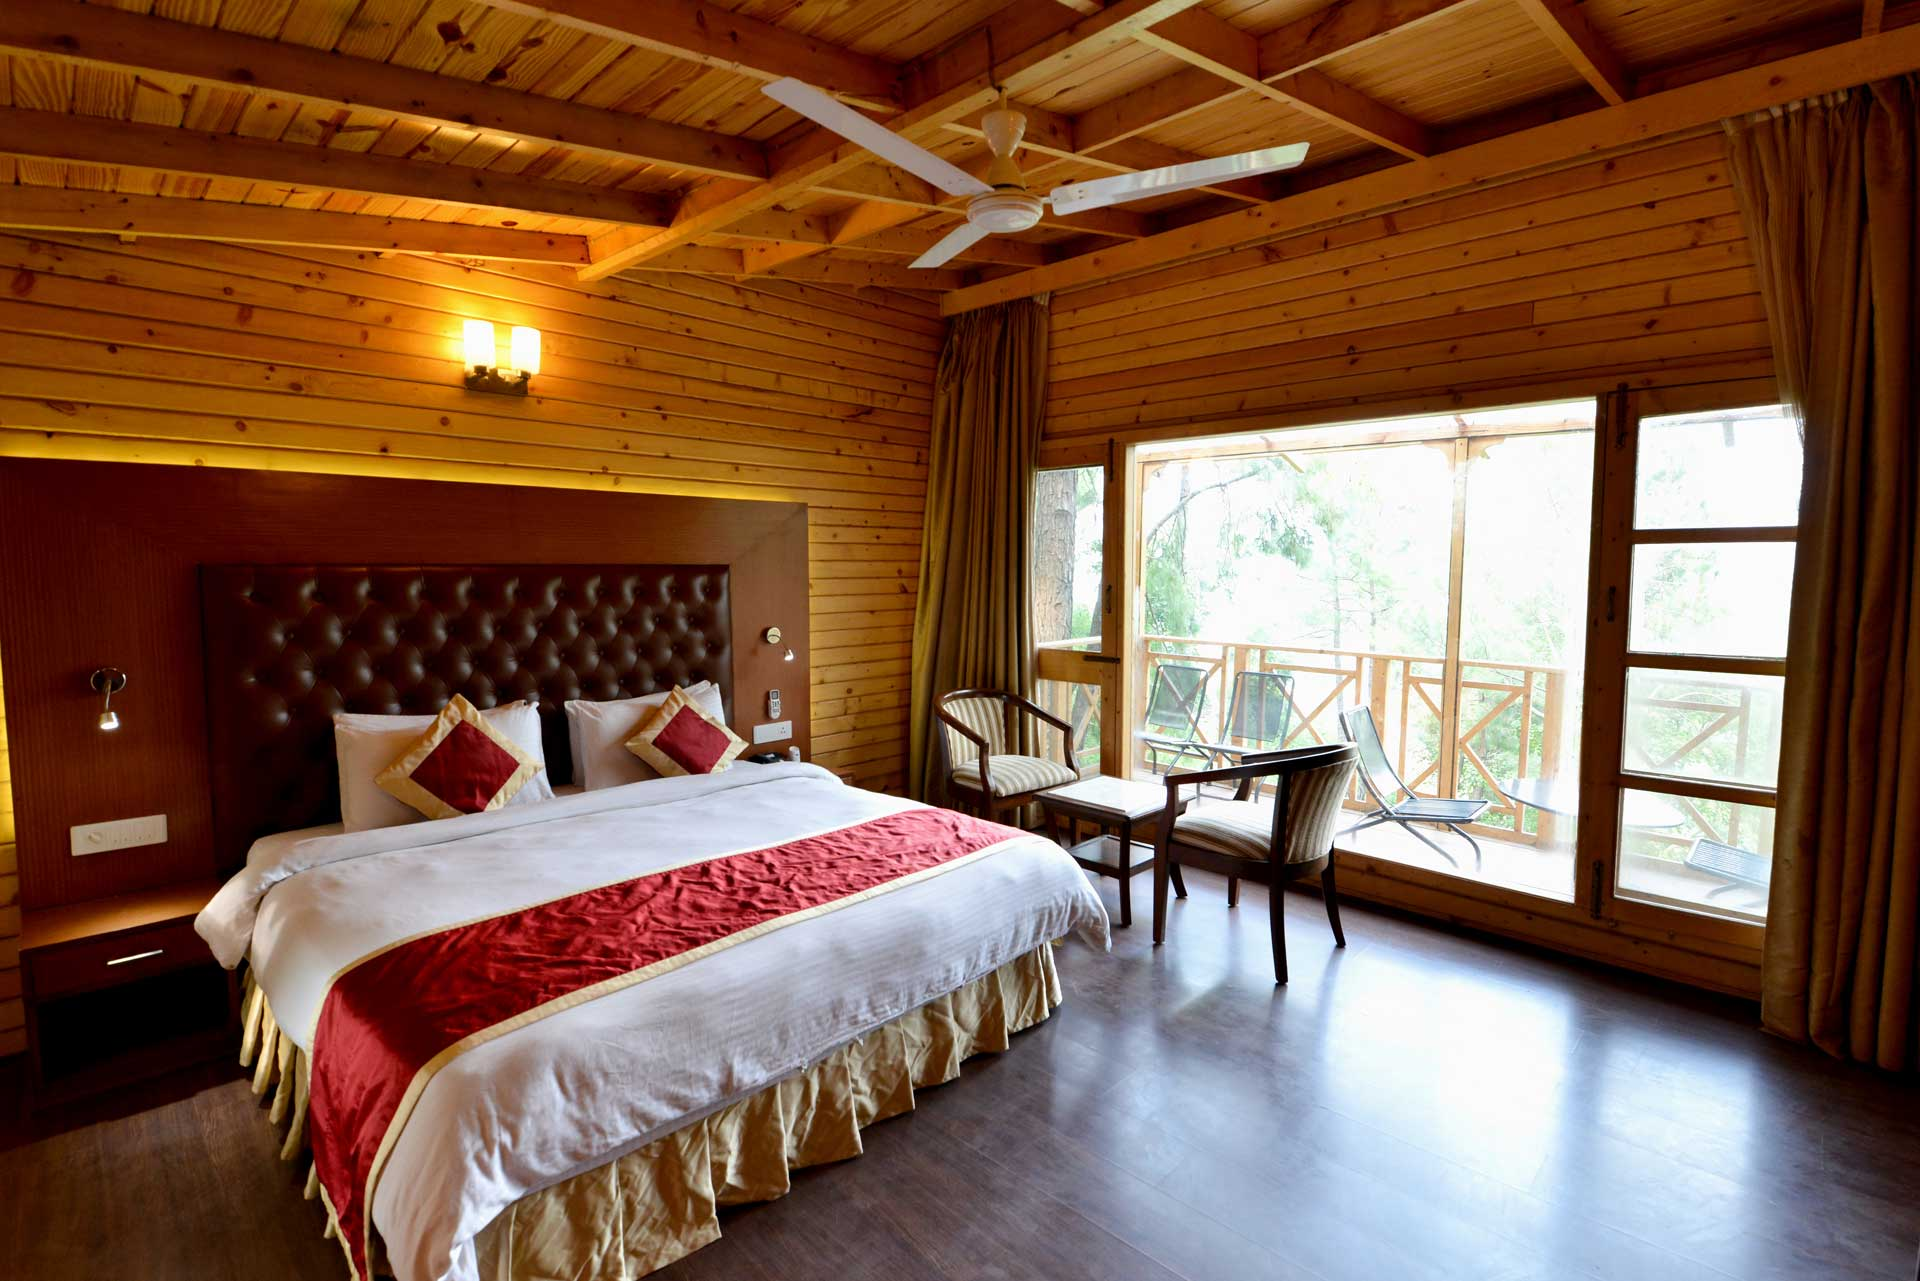 kasauli-hills-resortsuper-deluxe-cottages-accommodation-valley-facing-view-acoommodation